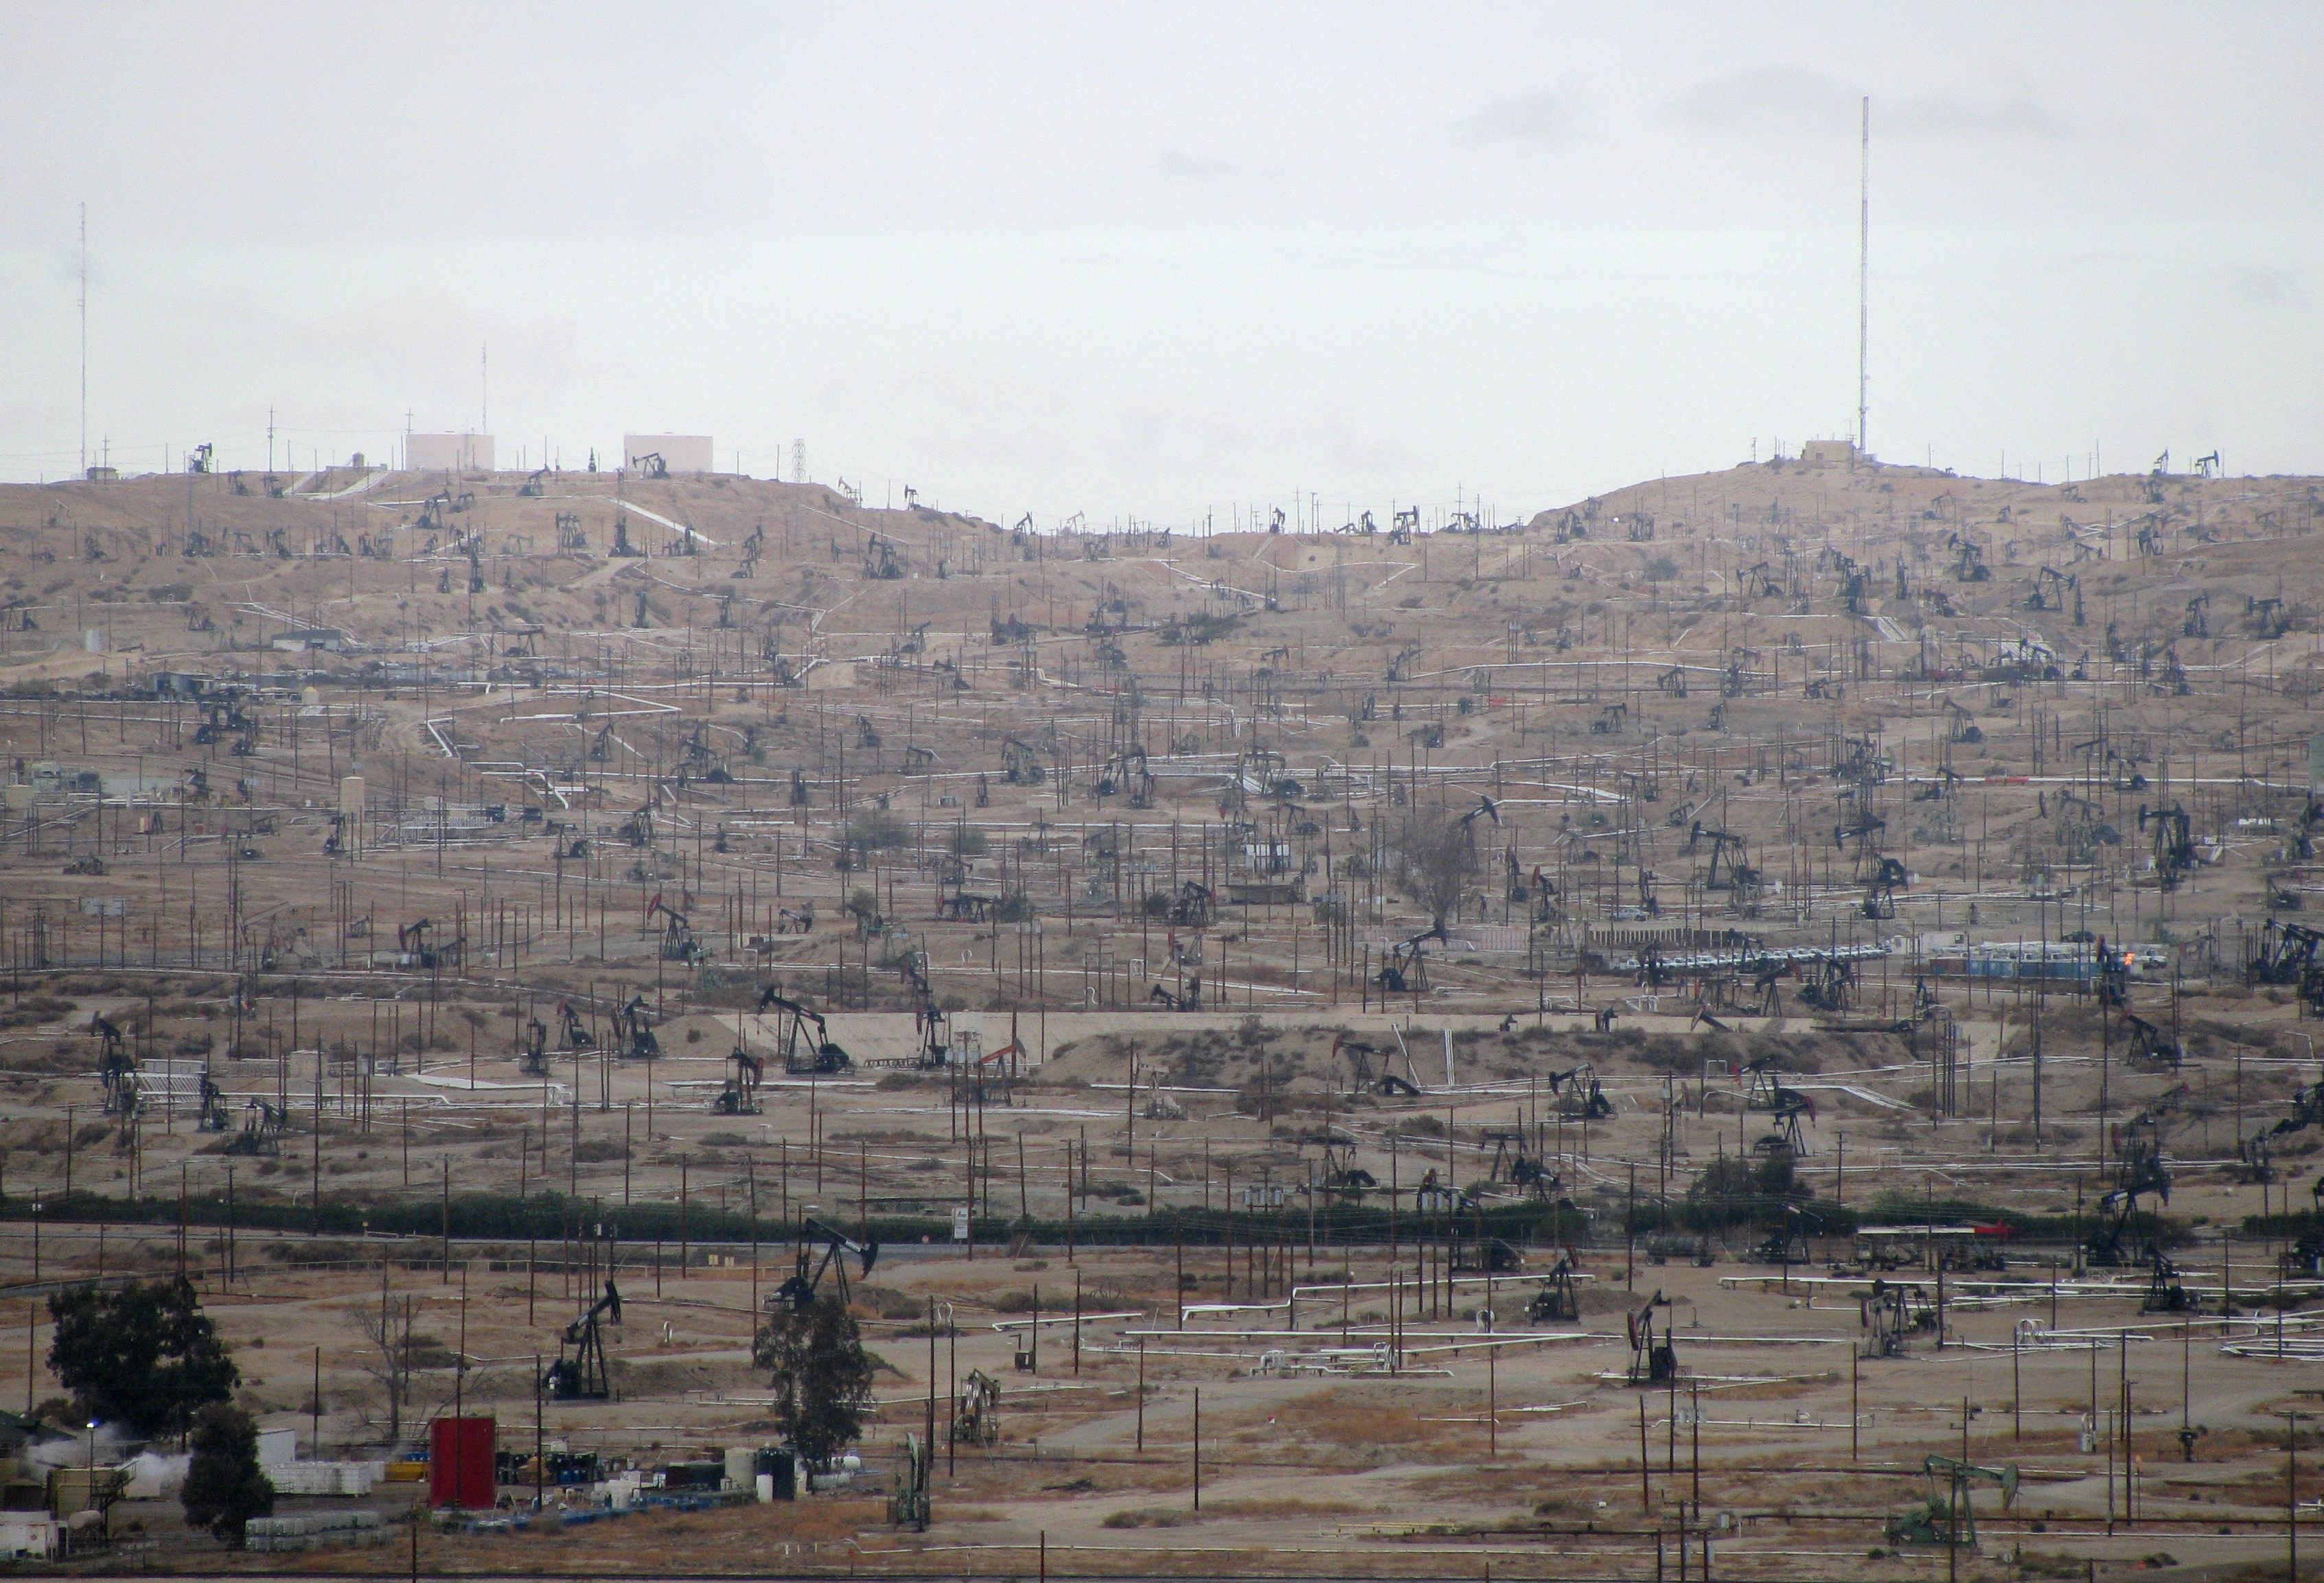 Caption: Kern River Oil Field; view from Panorama Park in Bakersfield, on the blufftop across the river. This is the most densely developed oilfield in California, and the fifth-largest producer (as of 2006) in the US., Credit: Antandrus – Wikipedia administrator, link to license: https://creativecommons.org/licenses/by-sa/3.0/